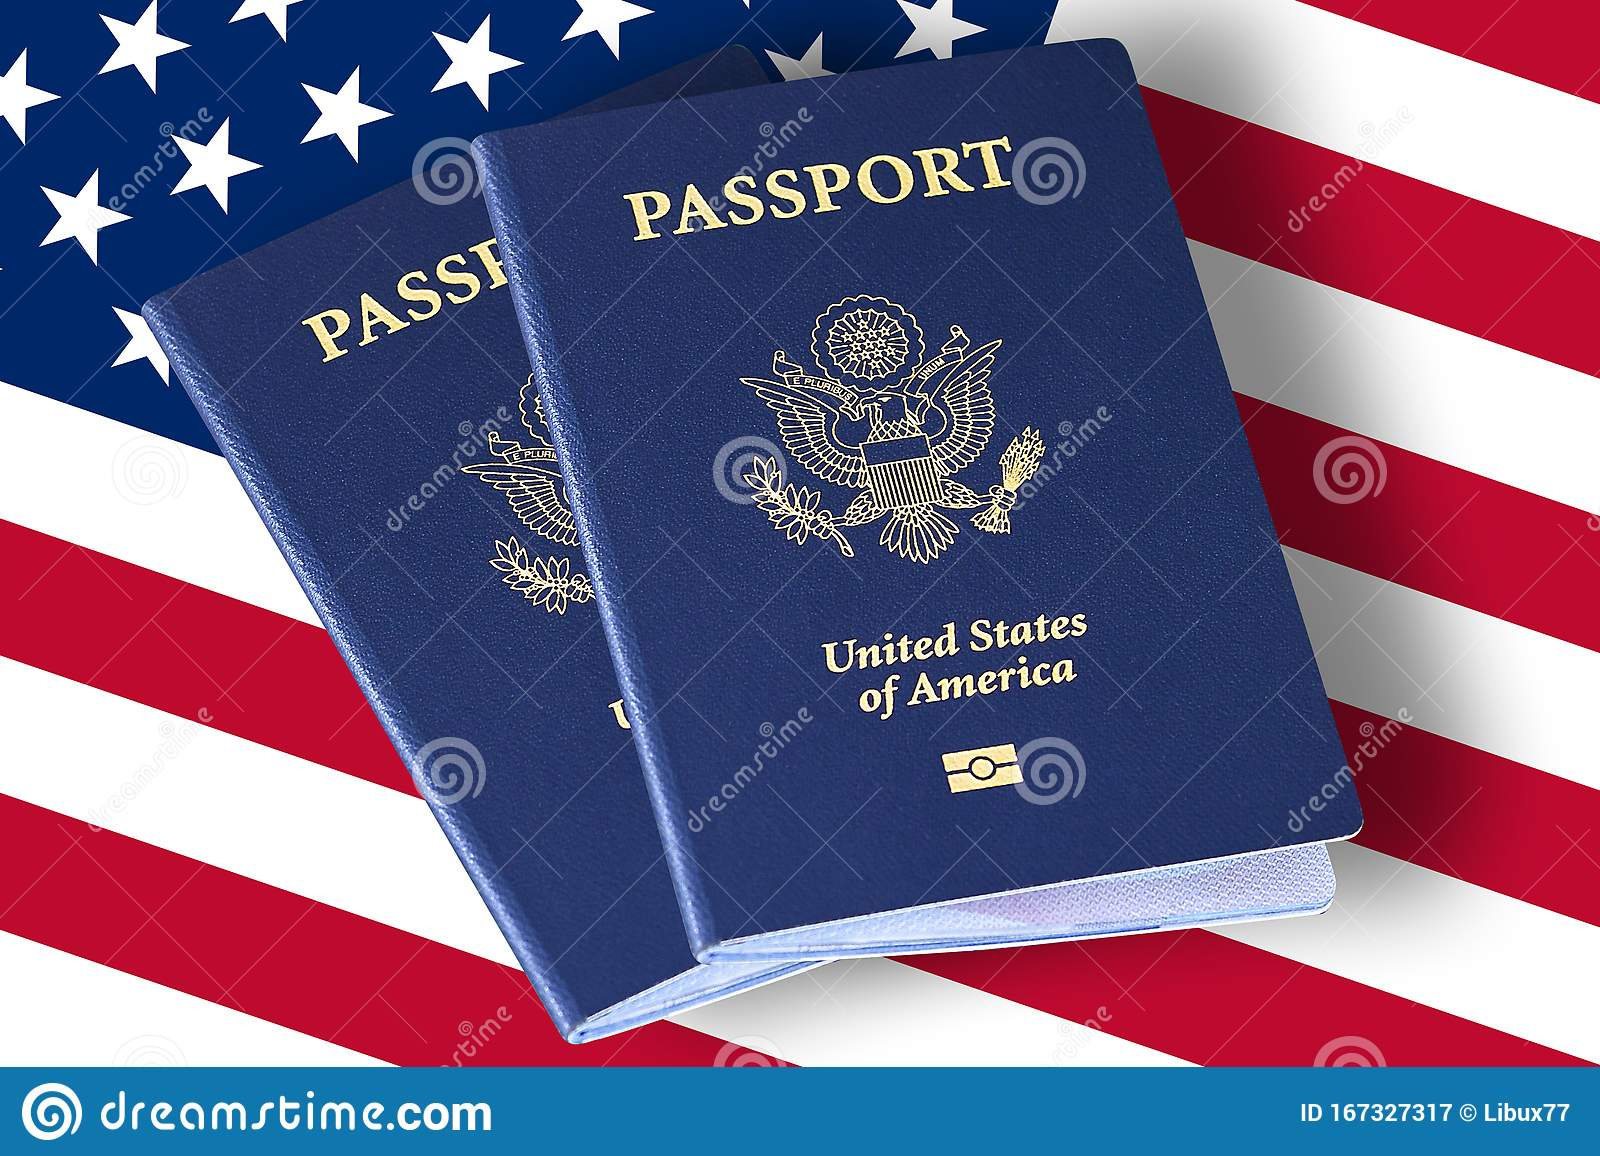 United States Of America Passports On Usa Or American Flag